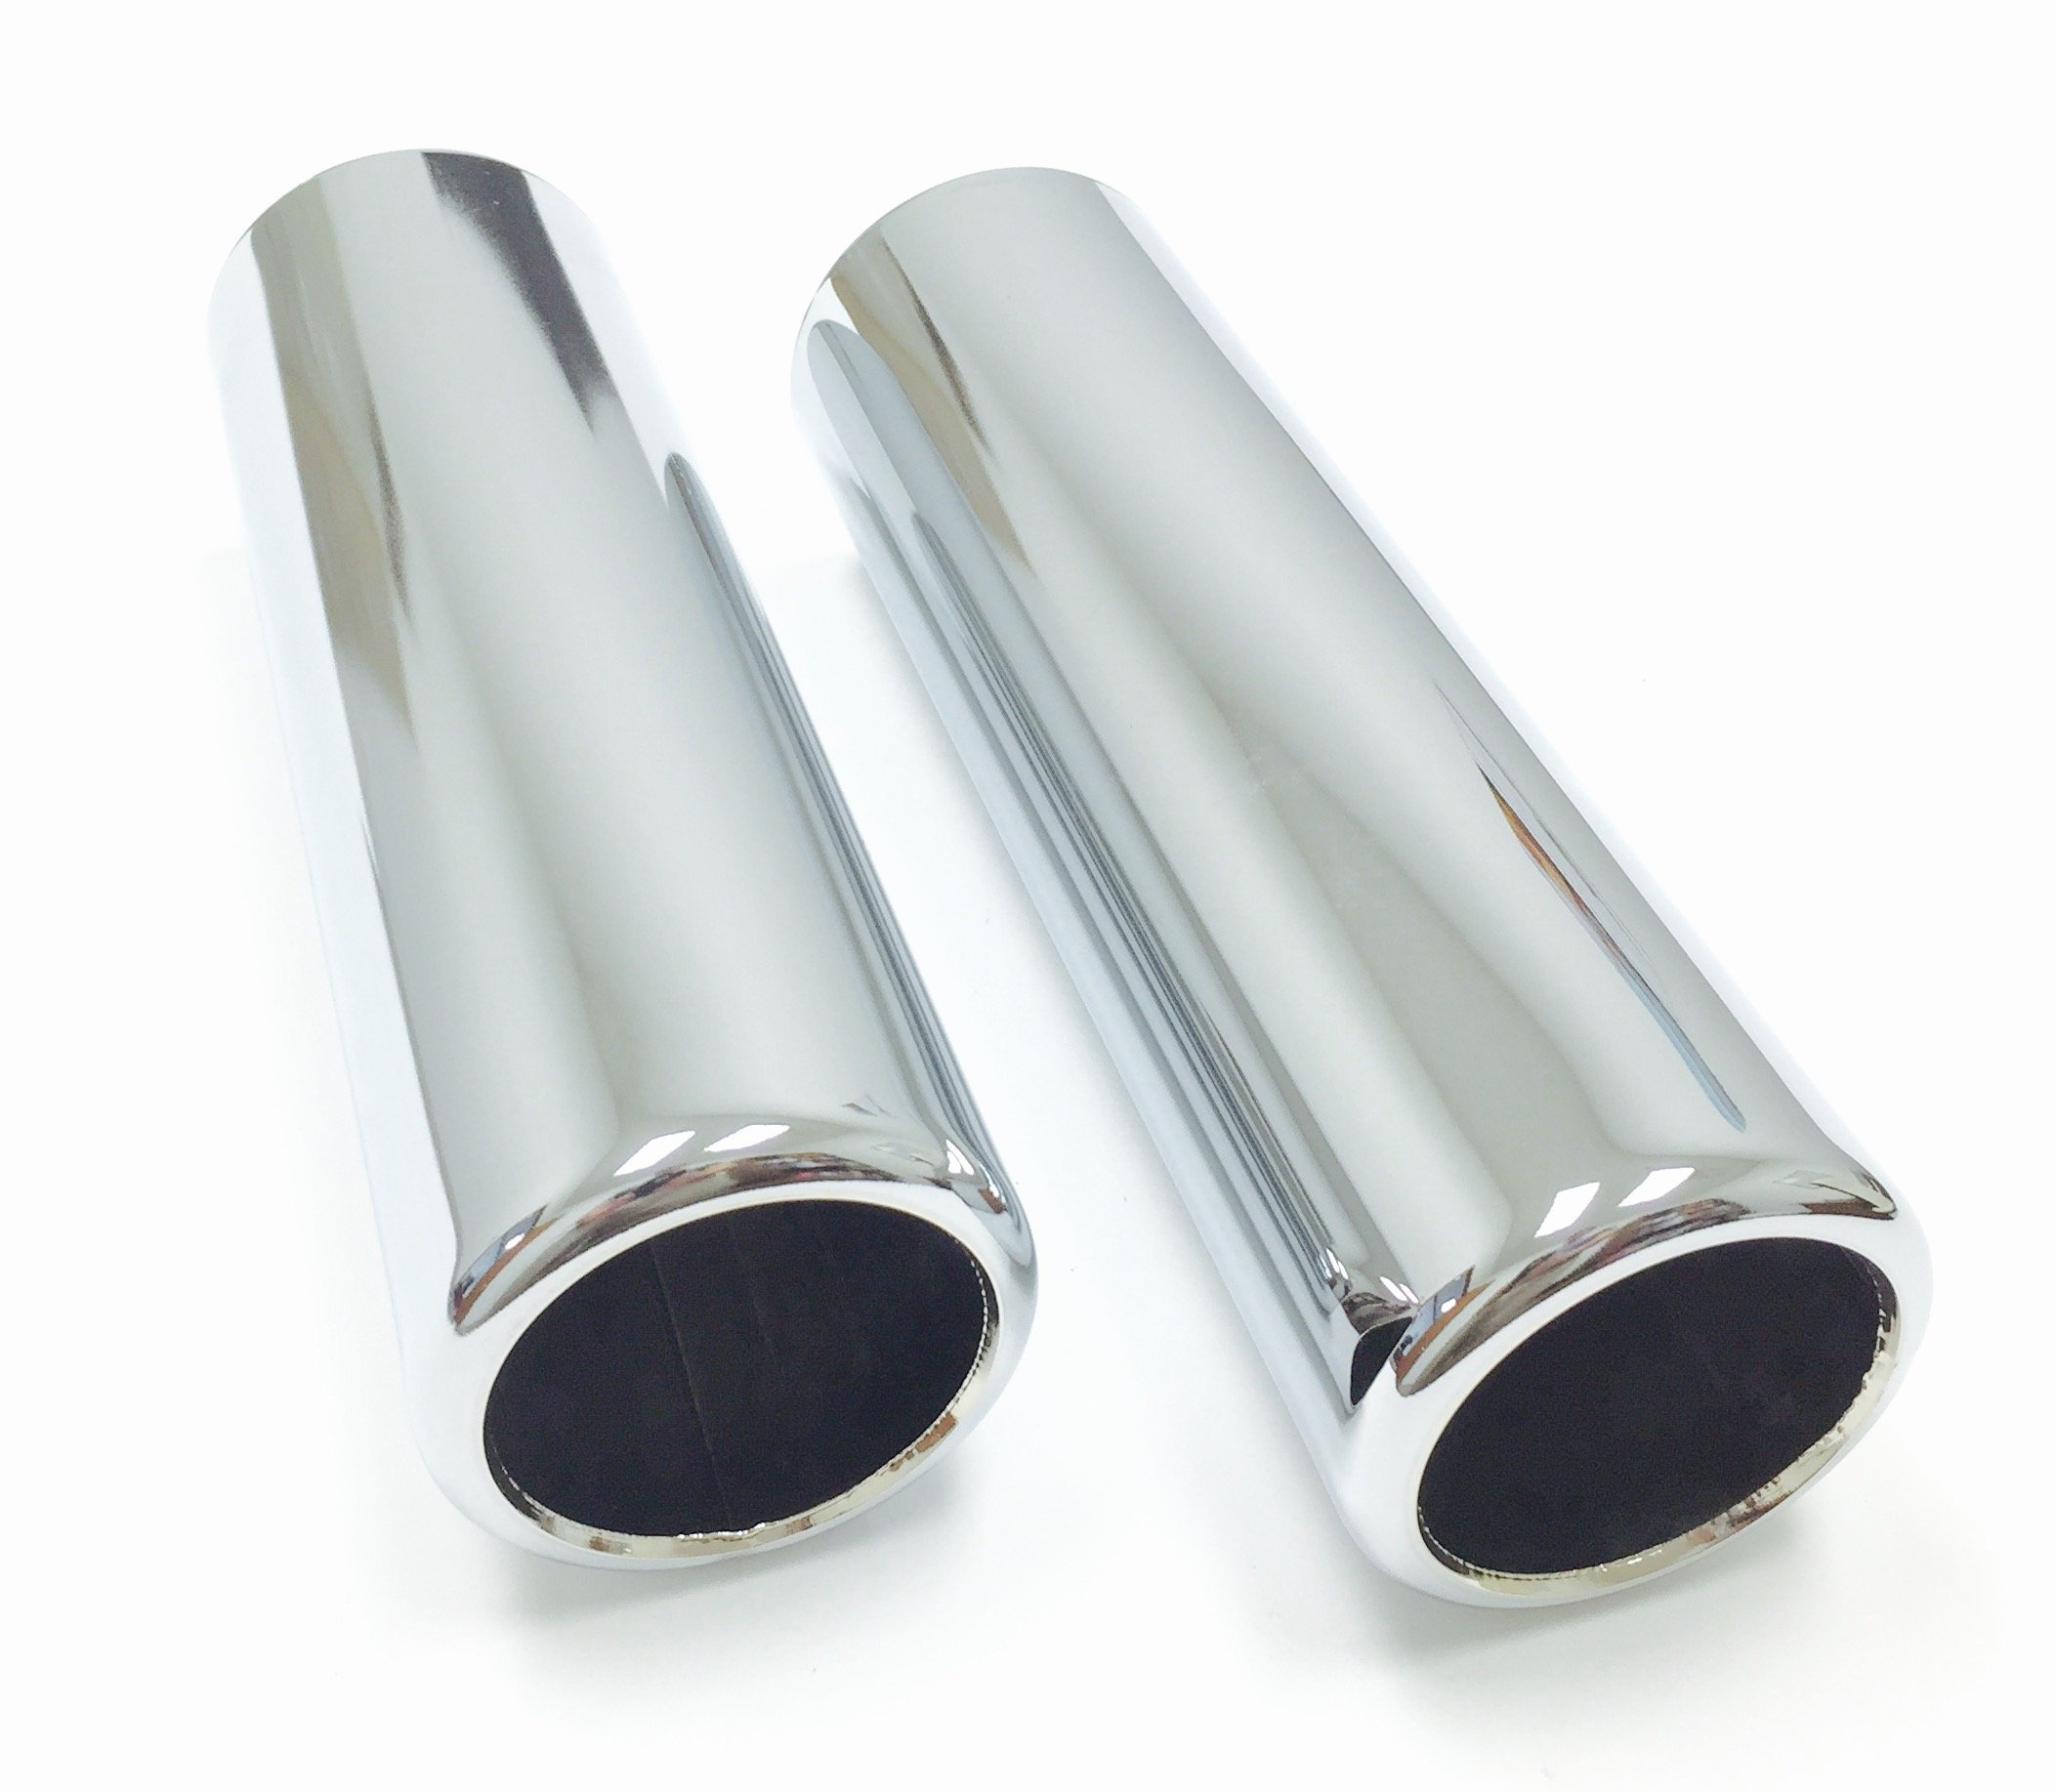 2 Piece Set of Pencil Cut Chrome Exhaust Tips 2.25'' Inlet, 2.50'' Outlet, 9'' Length